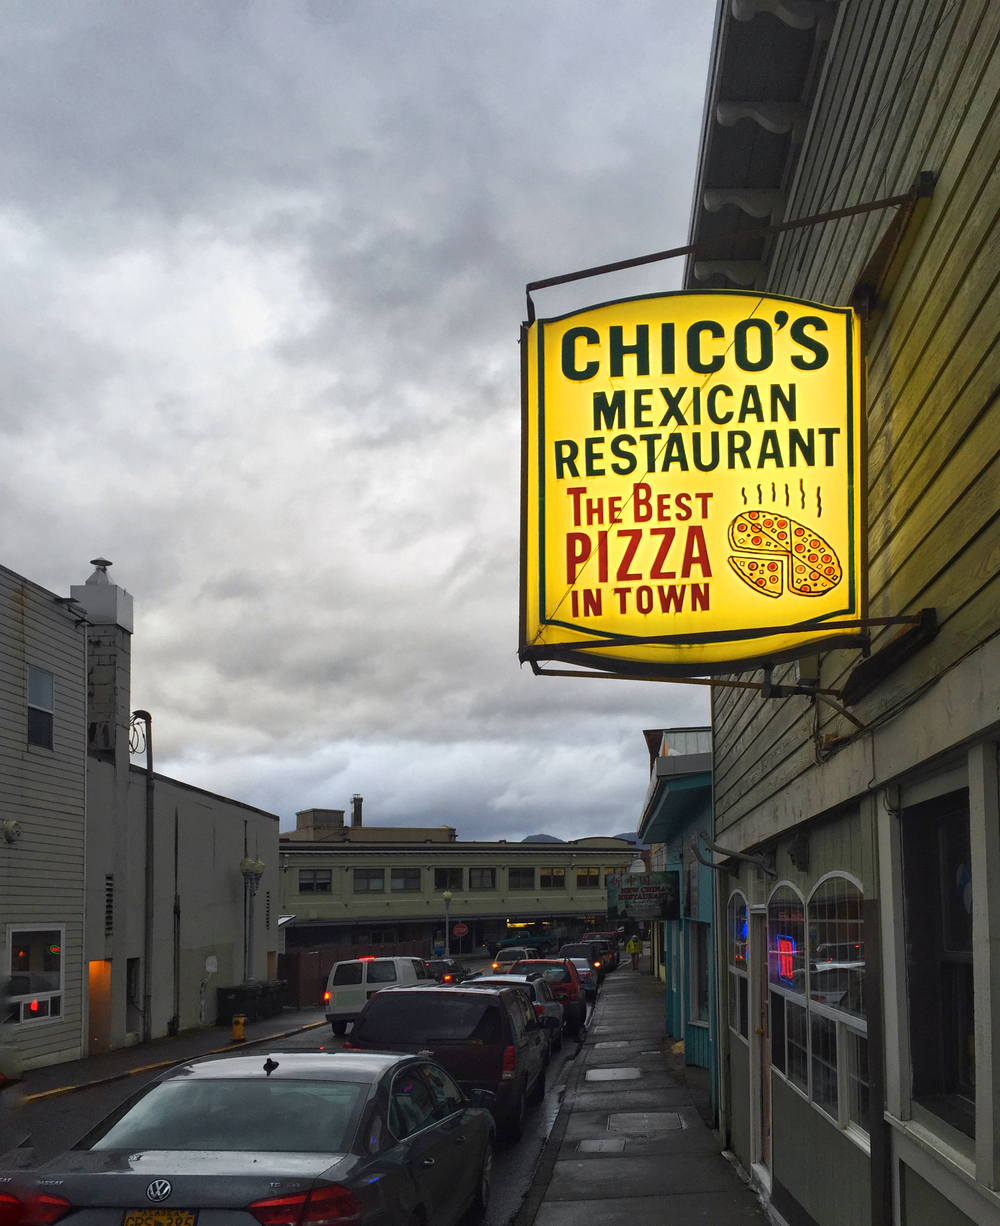 Chico's! That sign is misleading. It's also the best Mexican food in town. Thanks again, Patty! The chimichanga was amazing!